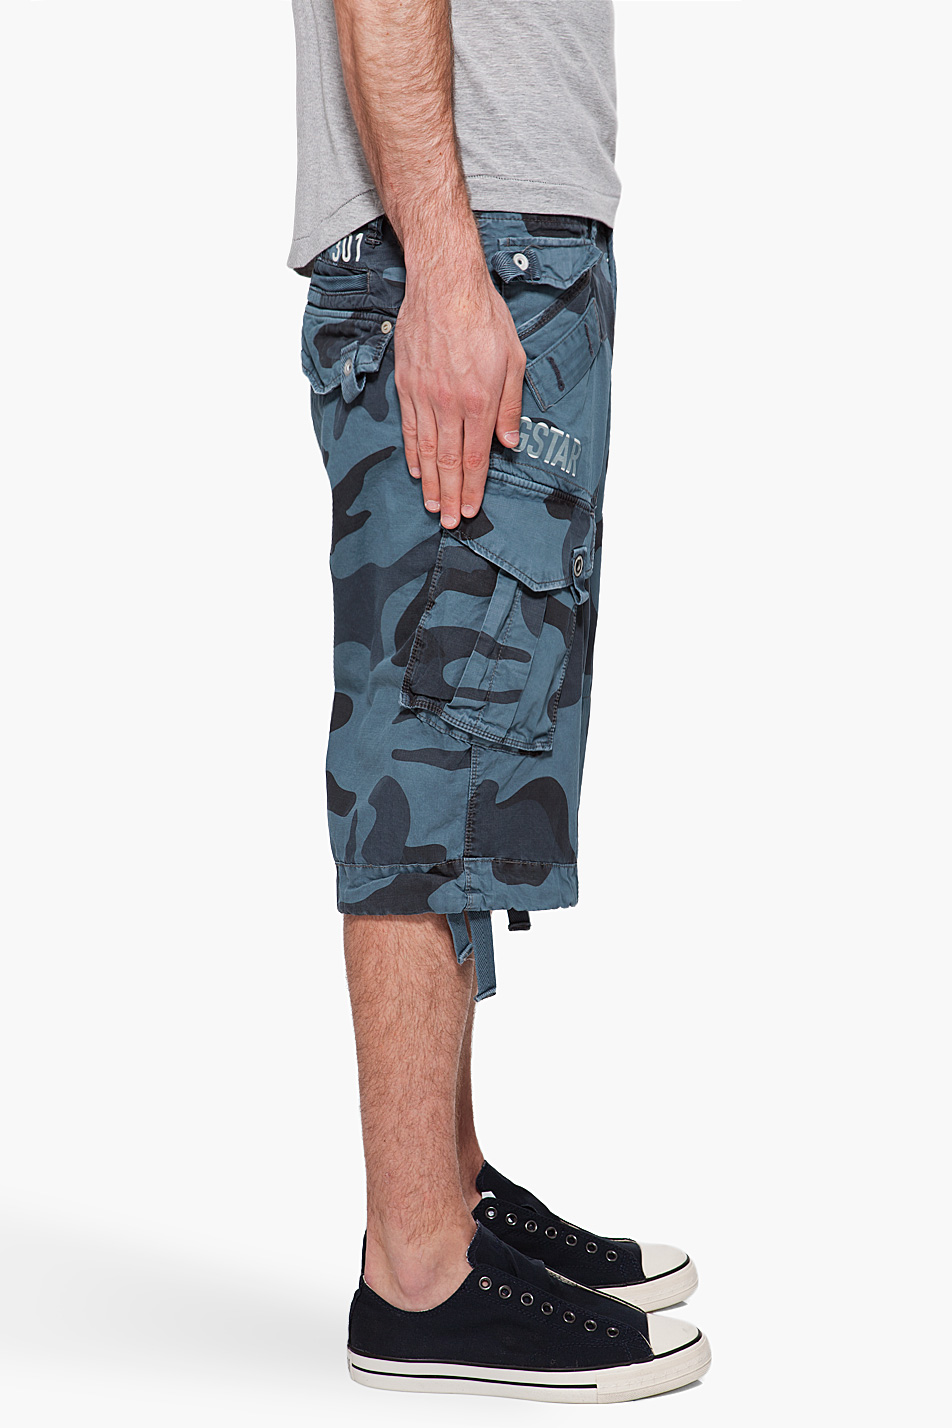 g star raw laundry camo rovic shorts in blue for men lyst. Black Bedroom Furniture Sets. Home Design Ideas